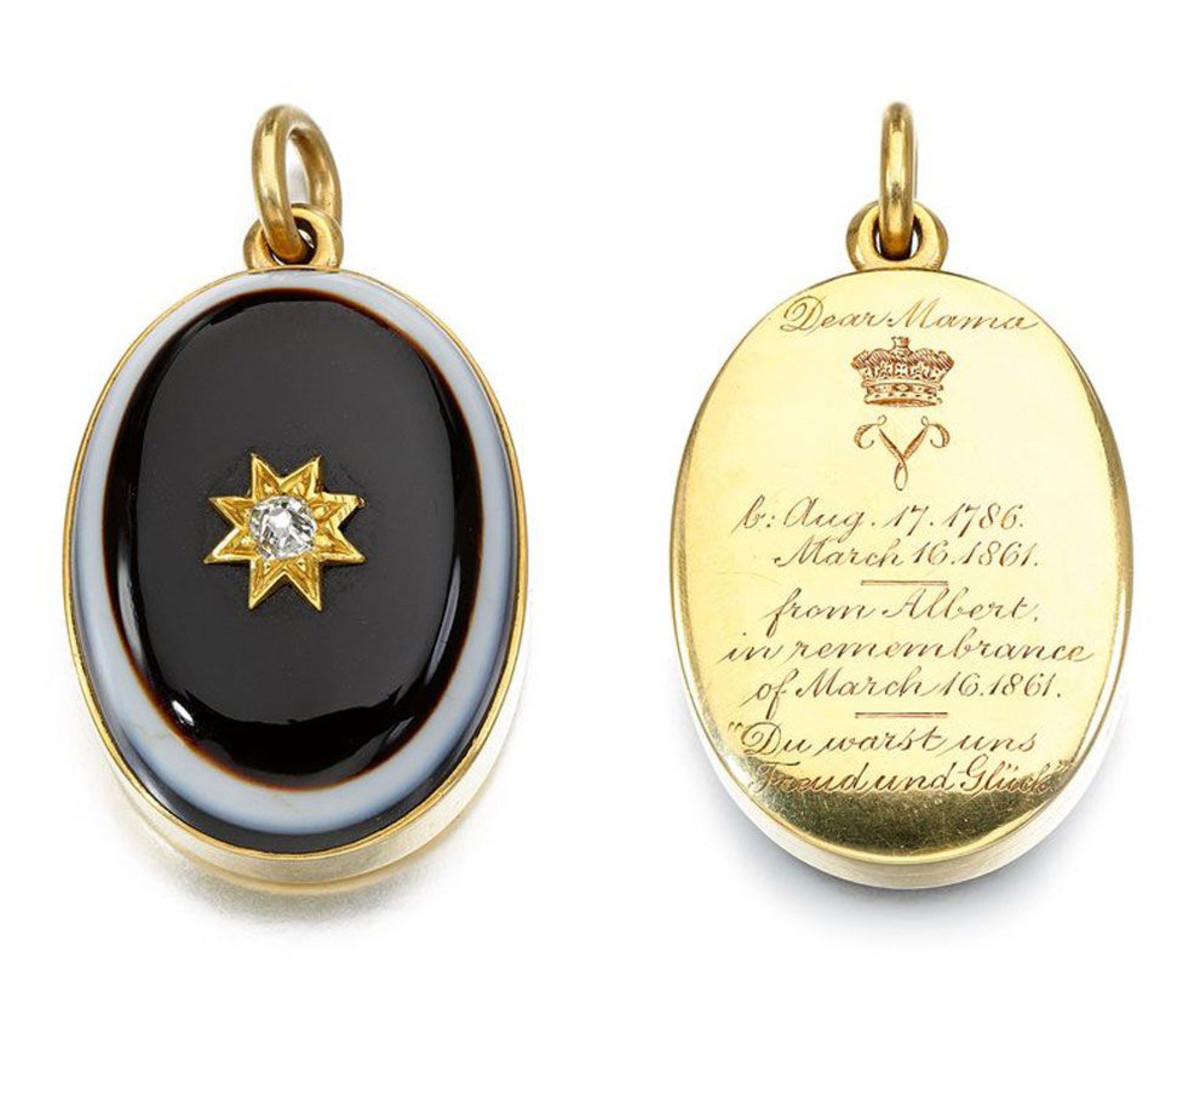 Banded agate and diamond locket, 1861, with a miniature photograph of the Duchess of Kent and a lock of hair, commissioned by Albert for Queen Victoria on the death of her mother; this sold for $45,264.